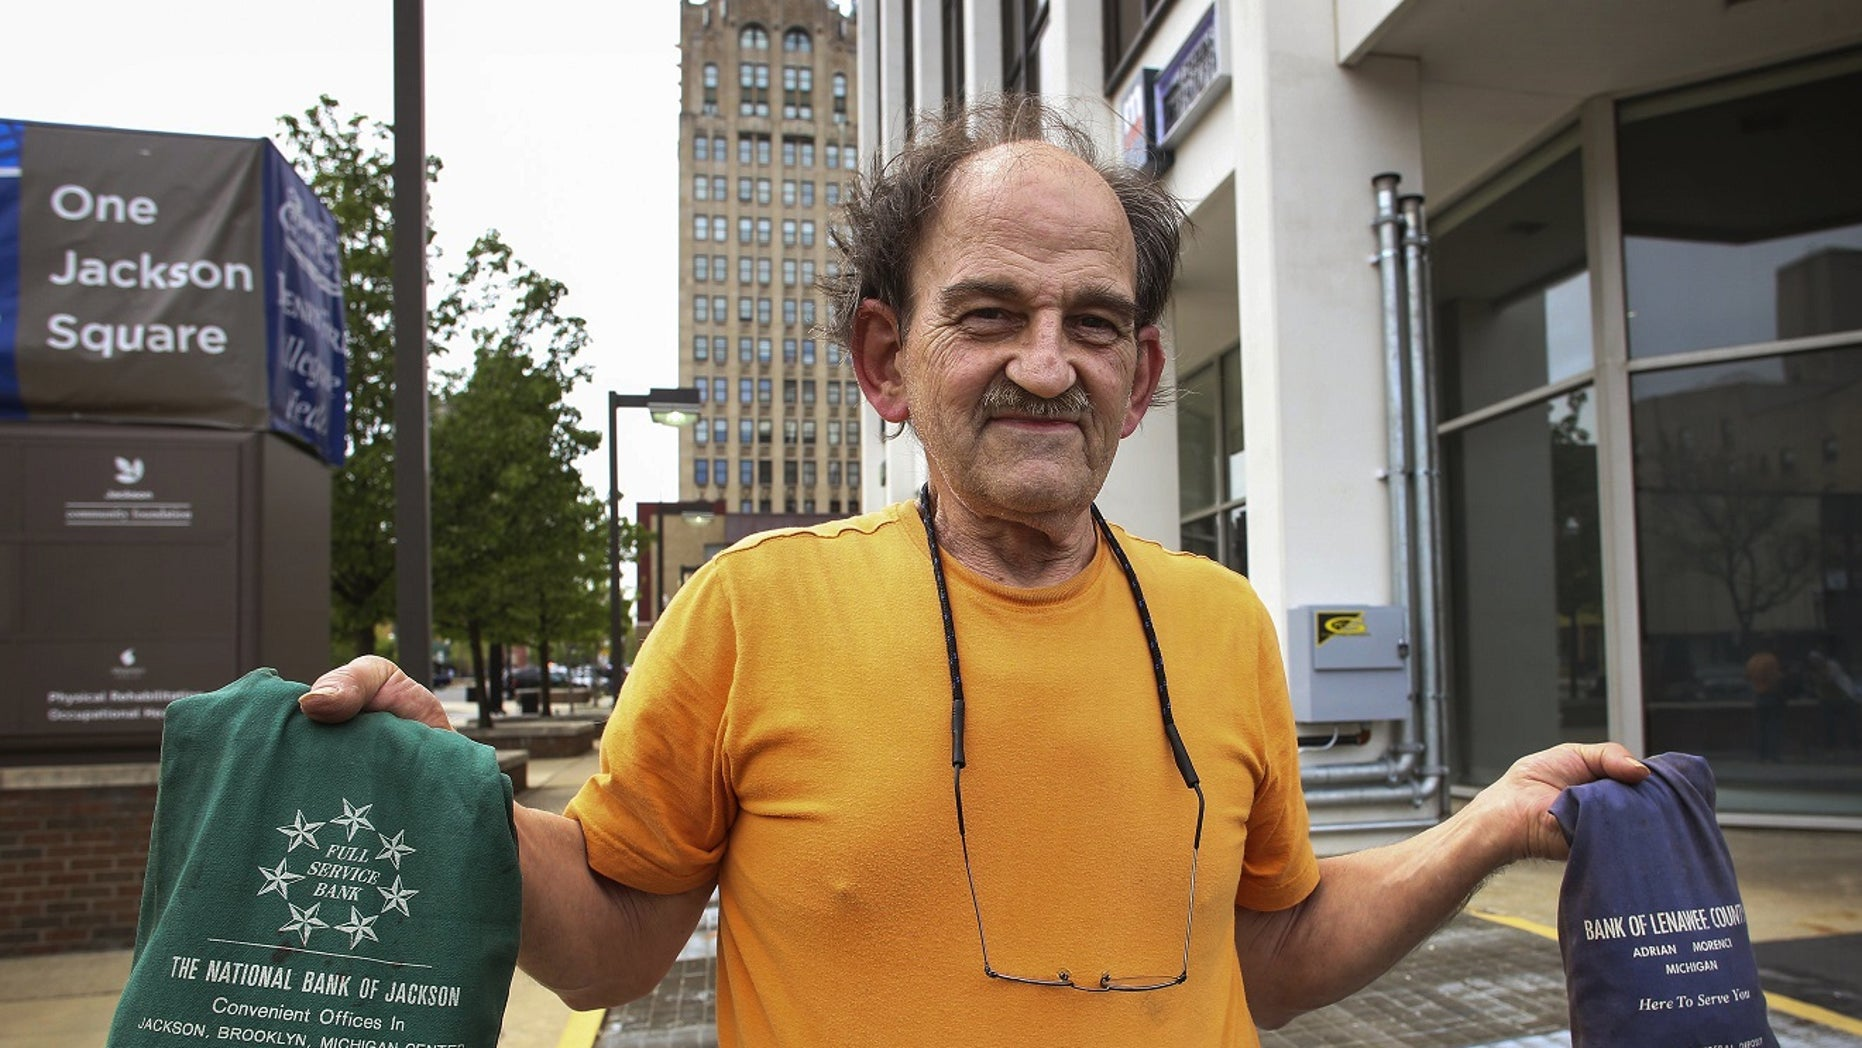 Michigan citizen Brian McGonegal attempted to pay a $270 fine in pennies to Jackson City Hall but was rejected.